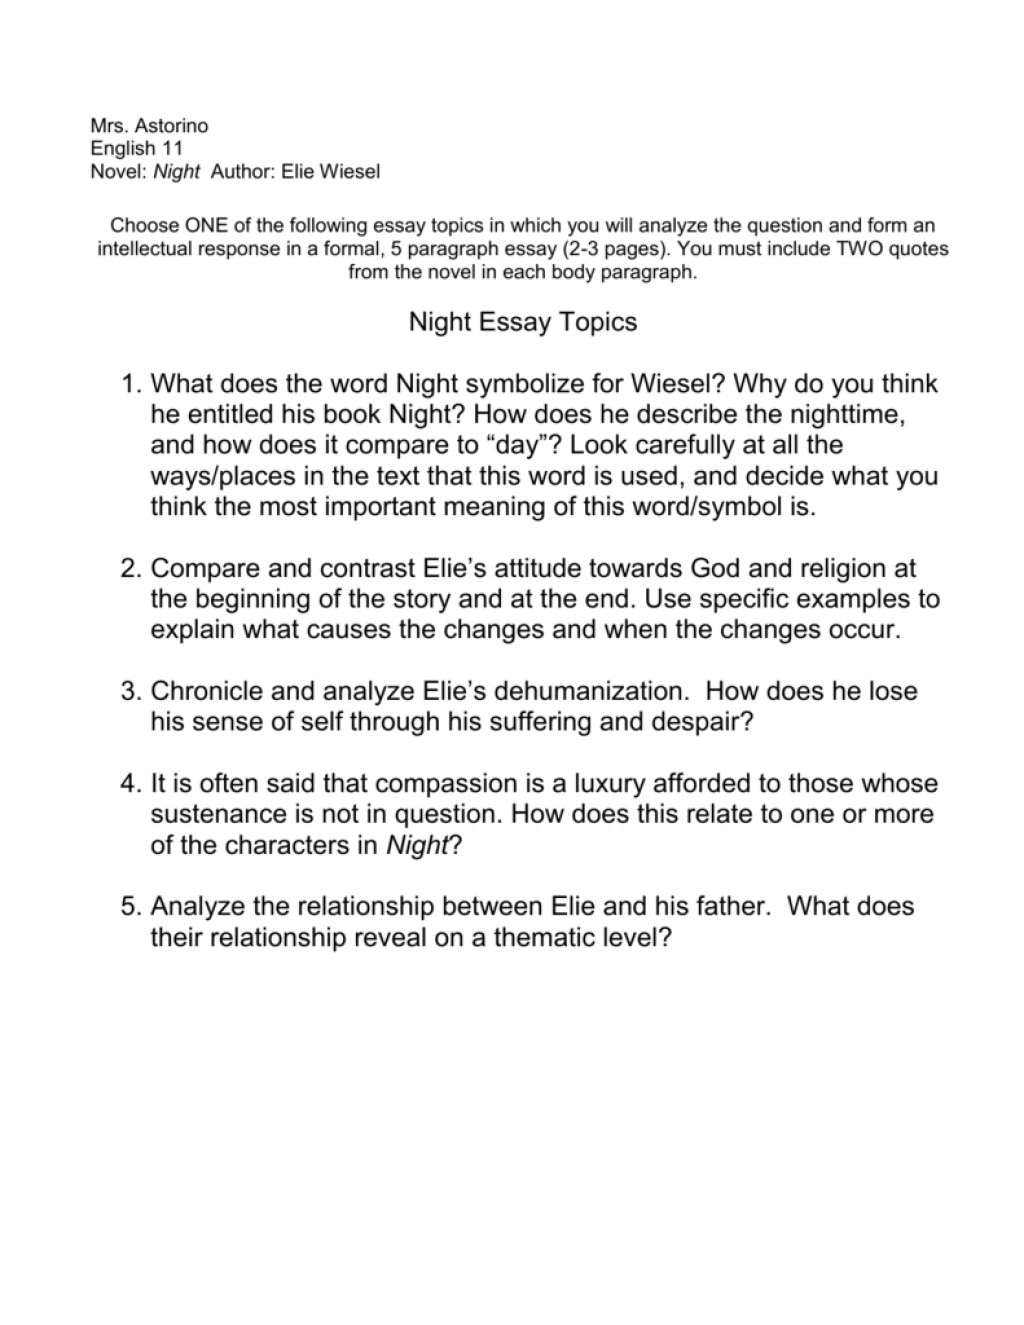 012 008045703 1 Essay Example Magnificent 2 Paragraph Topics About Friendship Graphic Organizer Large